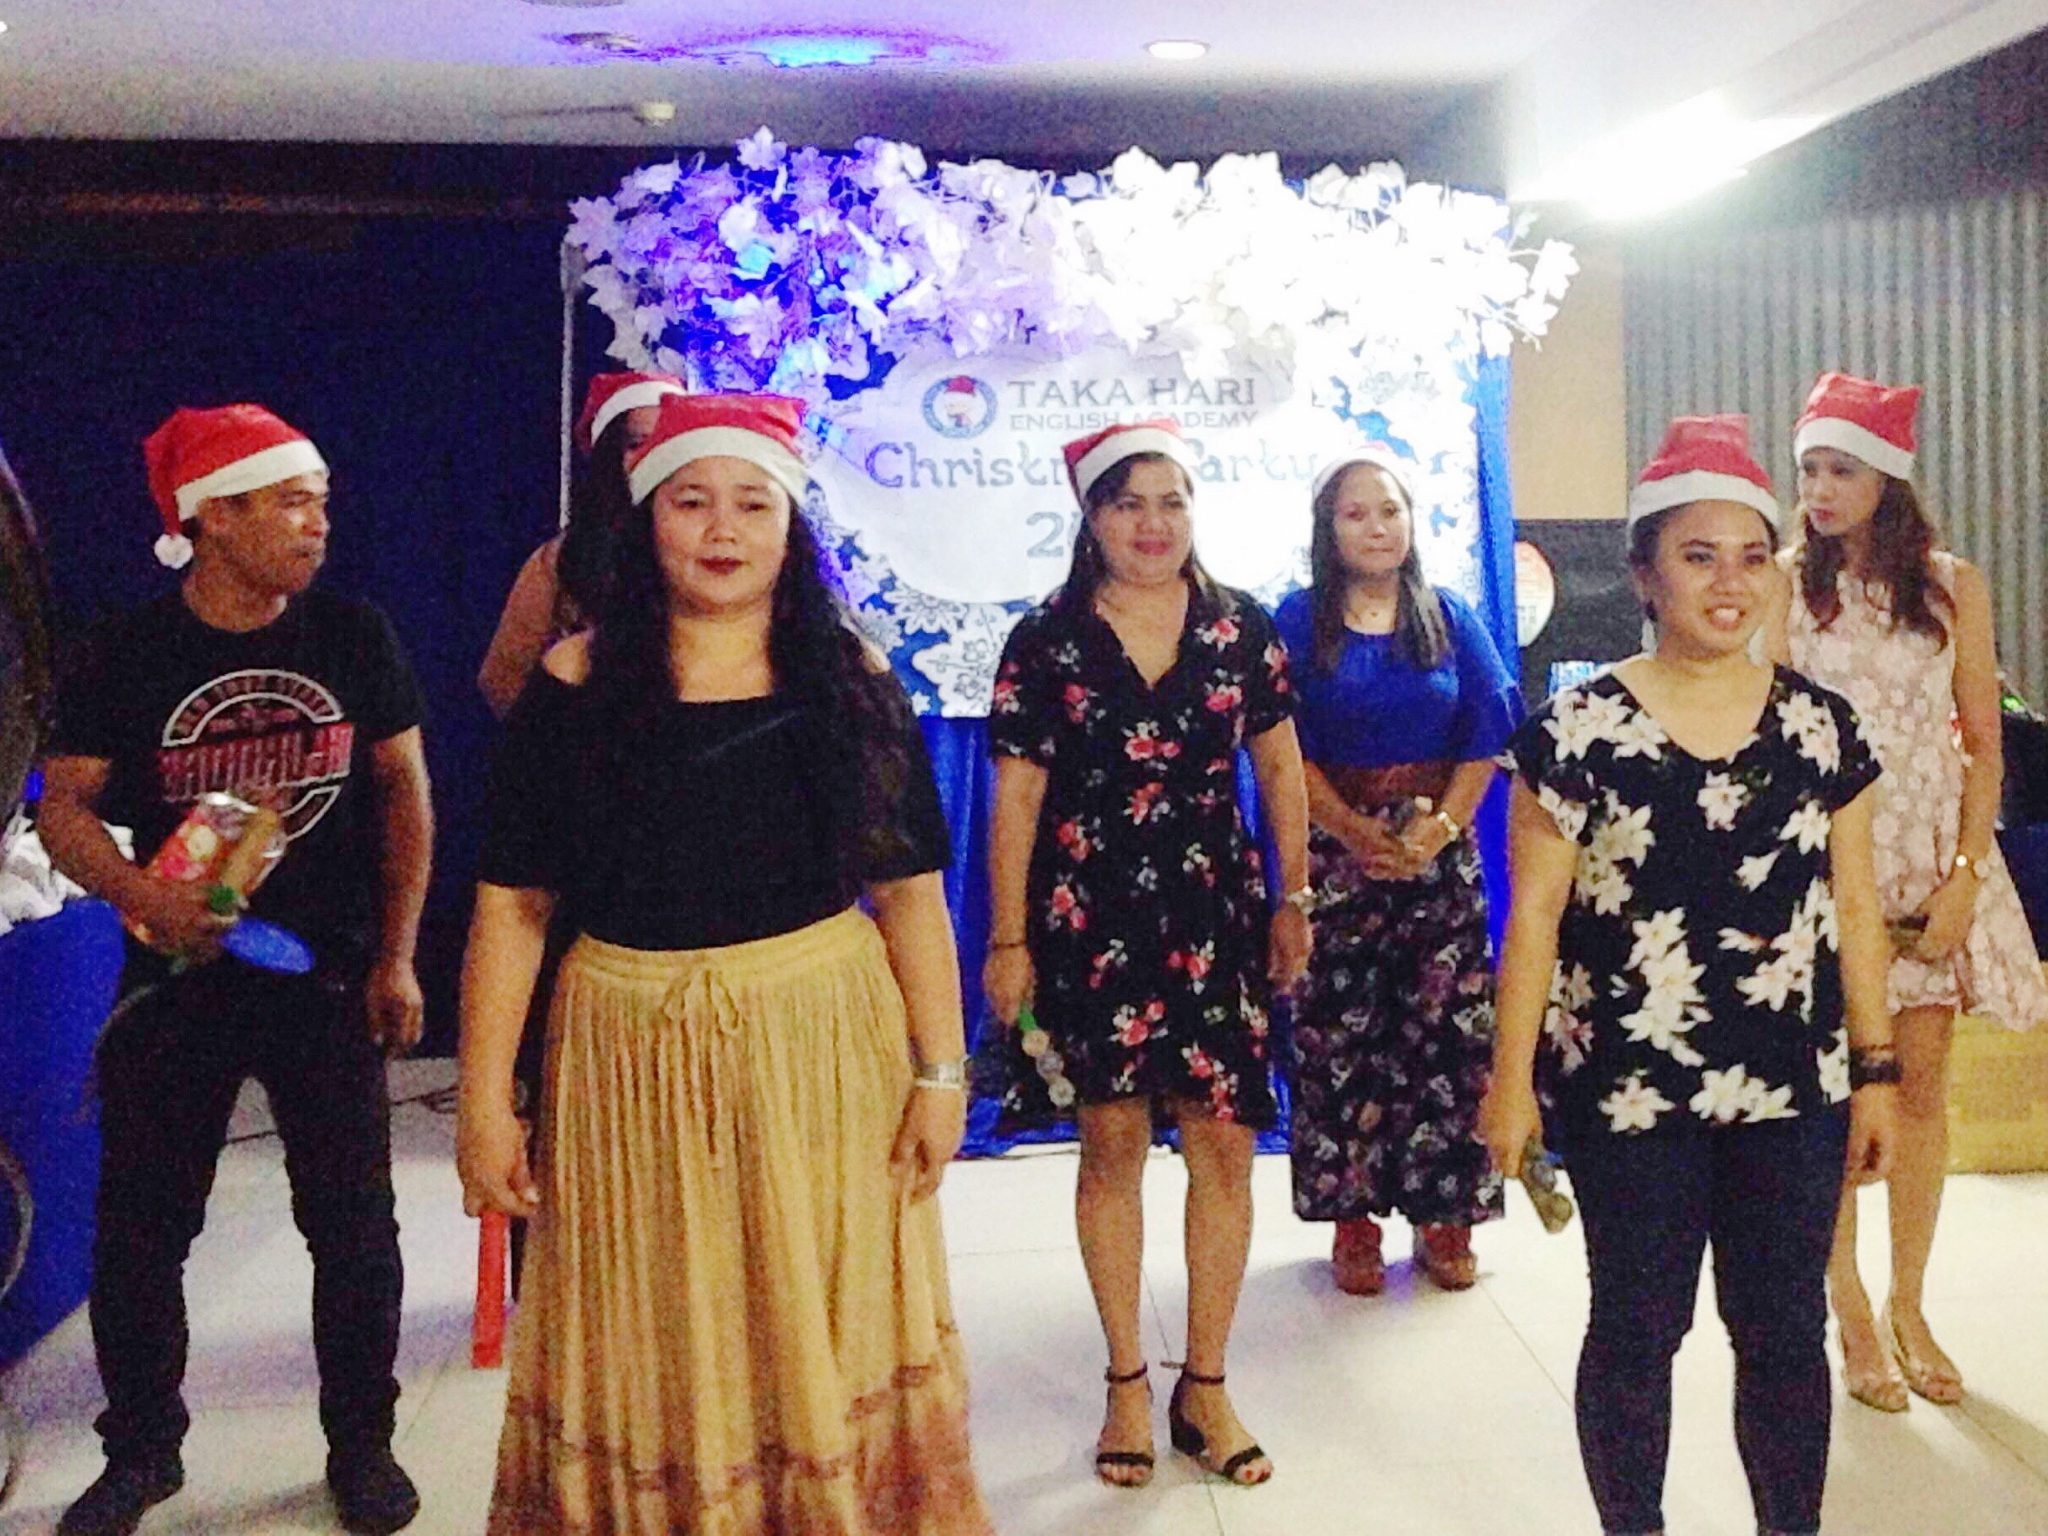 Takahari English Academy's Christmas party